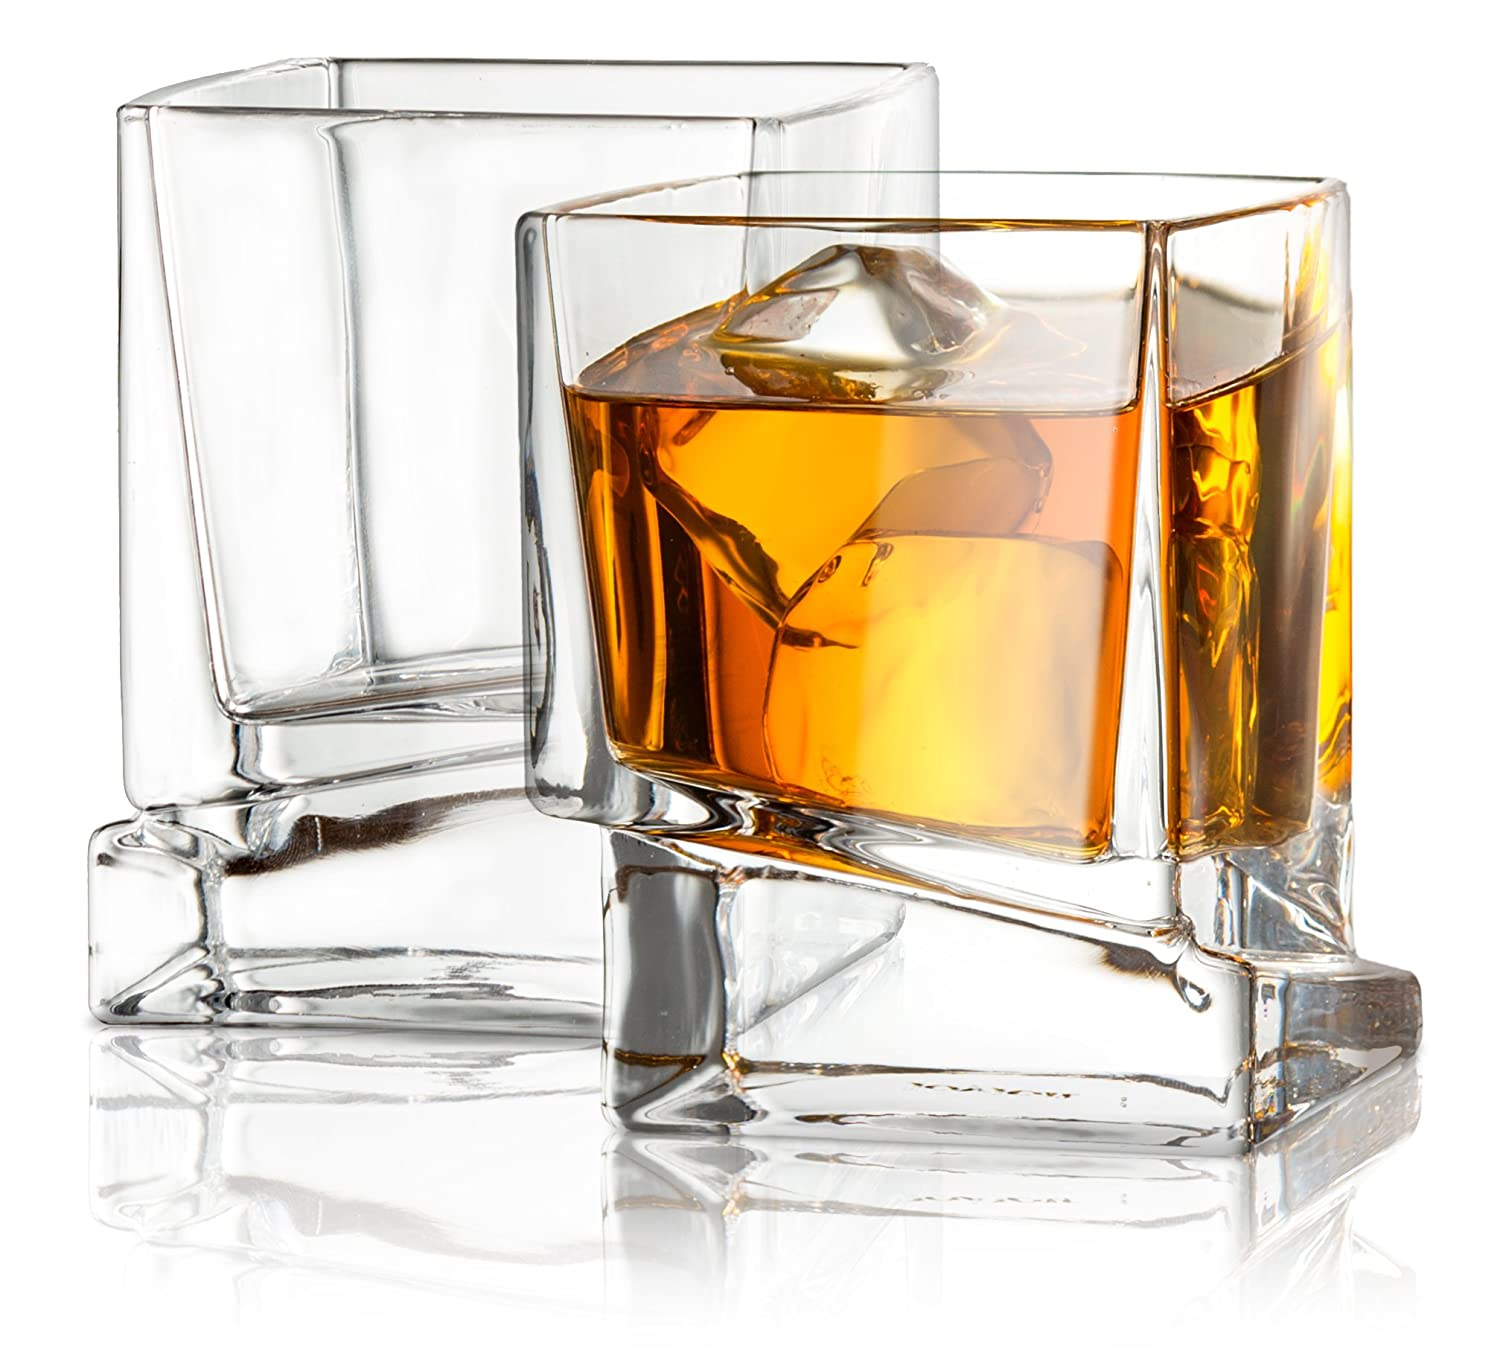 JoyJolt Carre Square Scotch Glasses, Old Fashioned Whiskey Glasses 10-Ounce, Ultra Clear Whiskey Glass for Bourbon and Liquor Set Of 2 Glassware JG10226